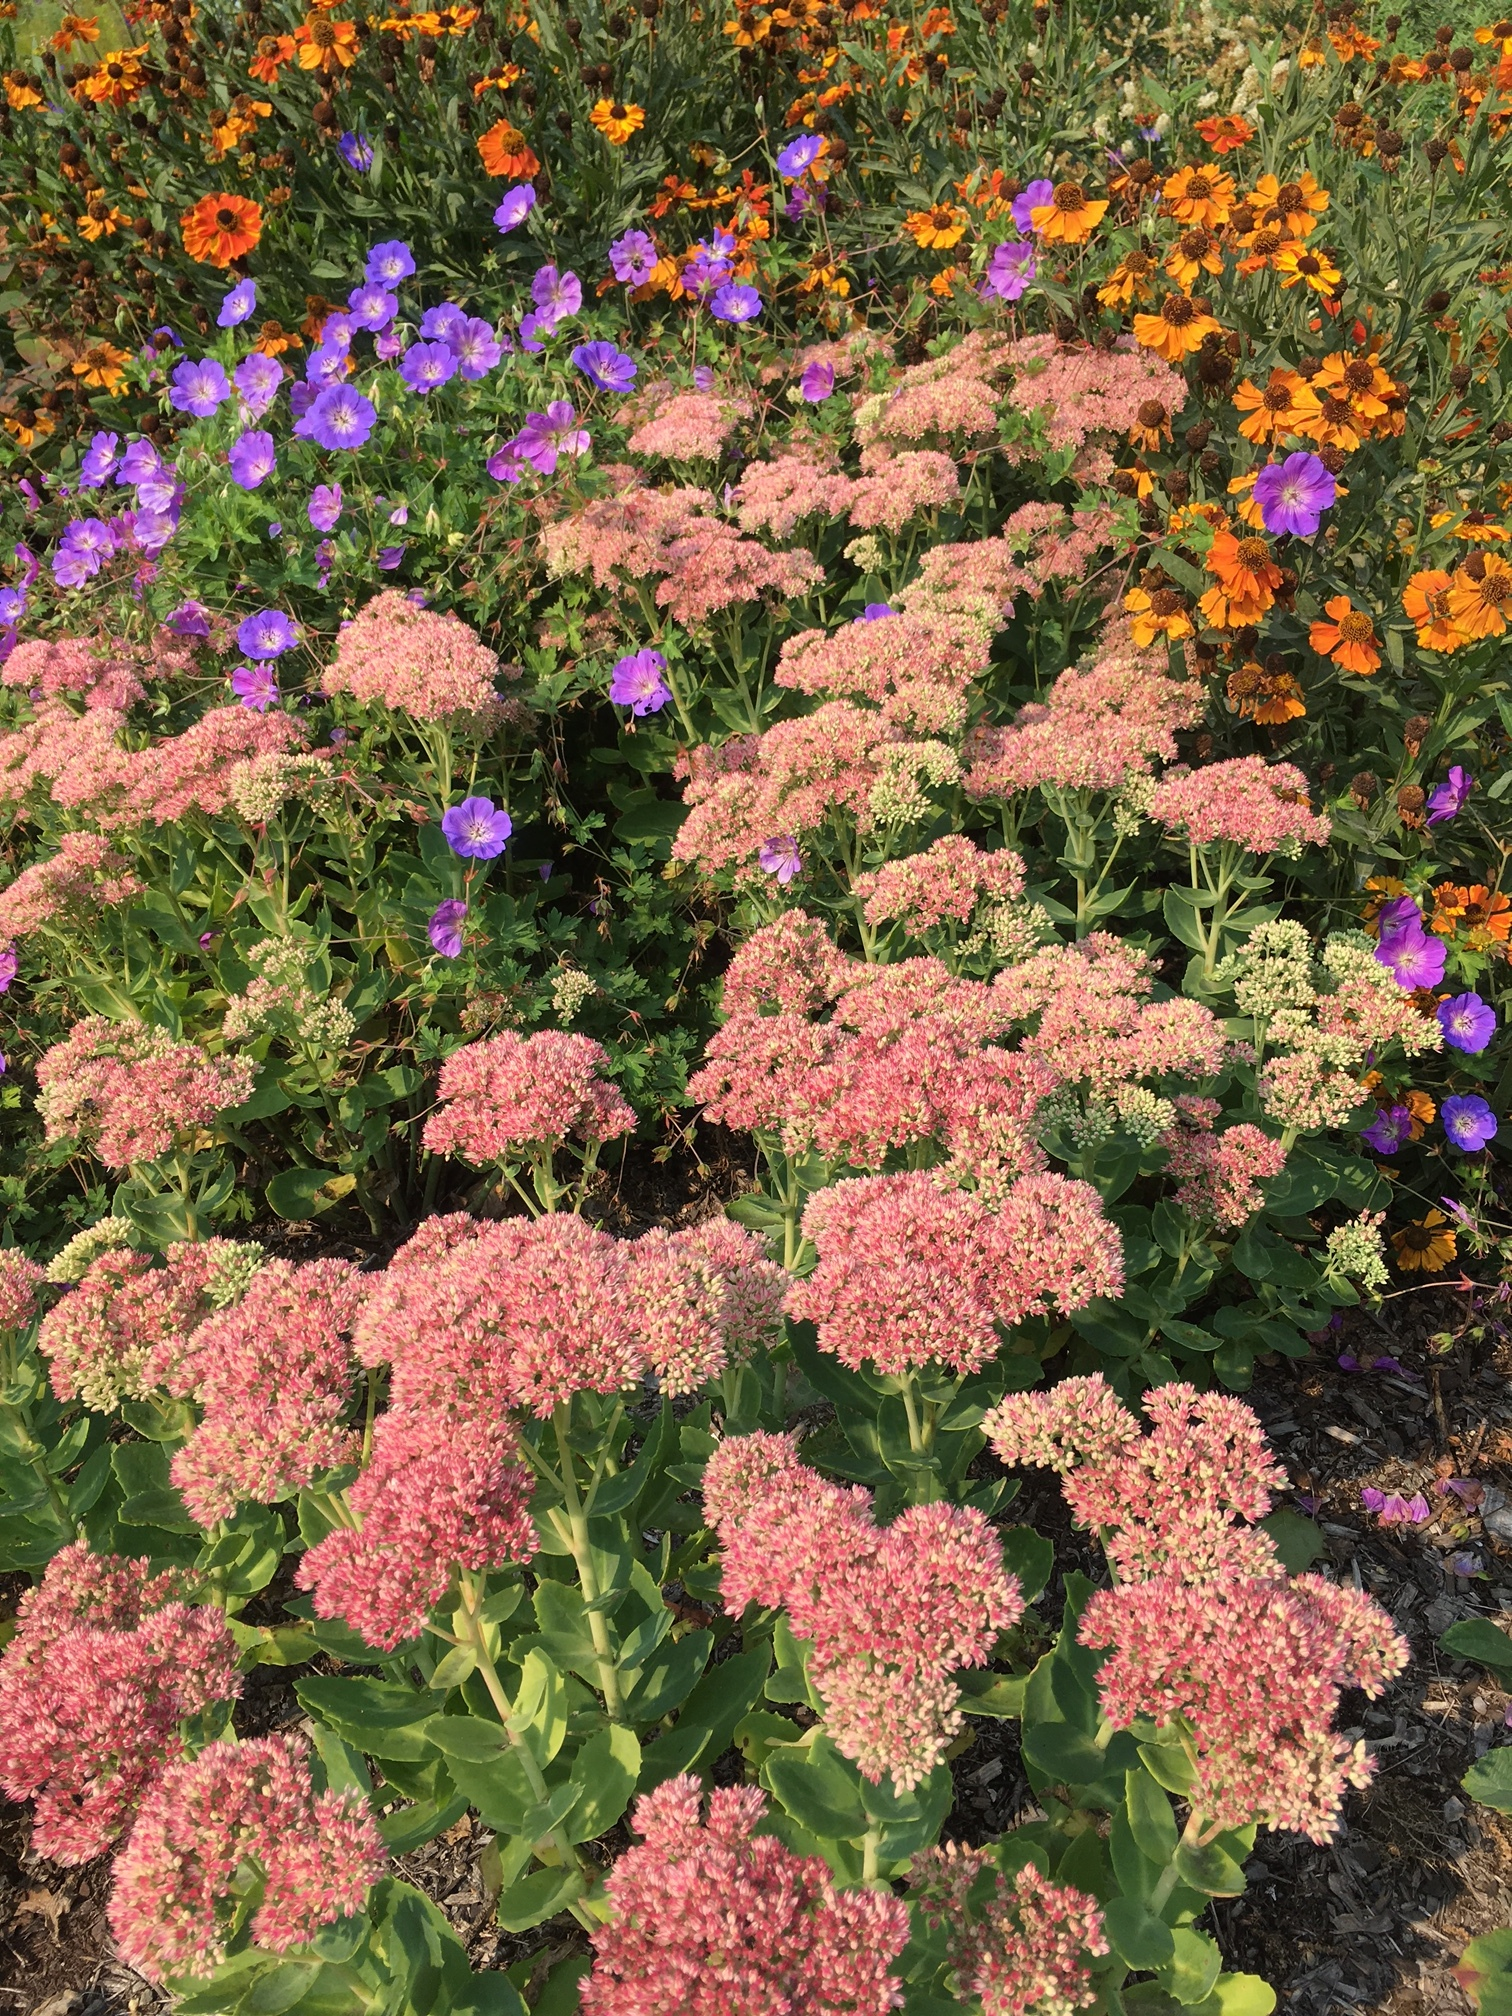 Sedums provide reliable late summe color. Helenium 'Mardi Gras' and Geranium 'Rozanne' bloom earlier but keep going through the summer. .